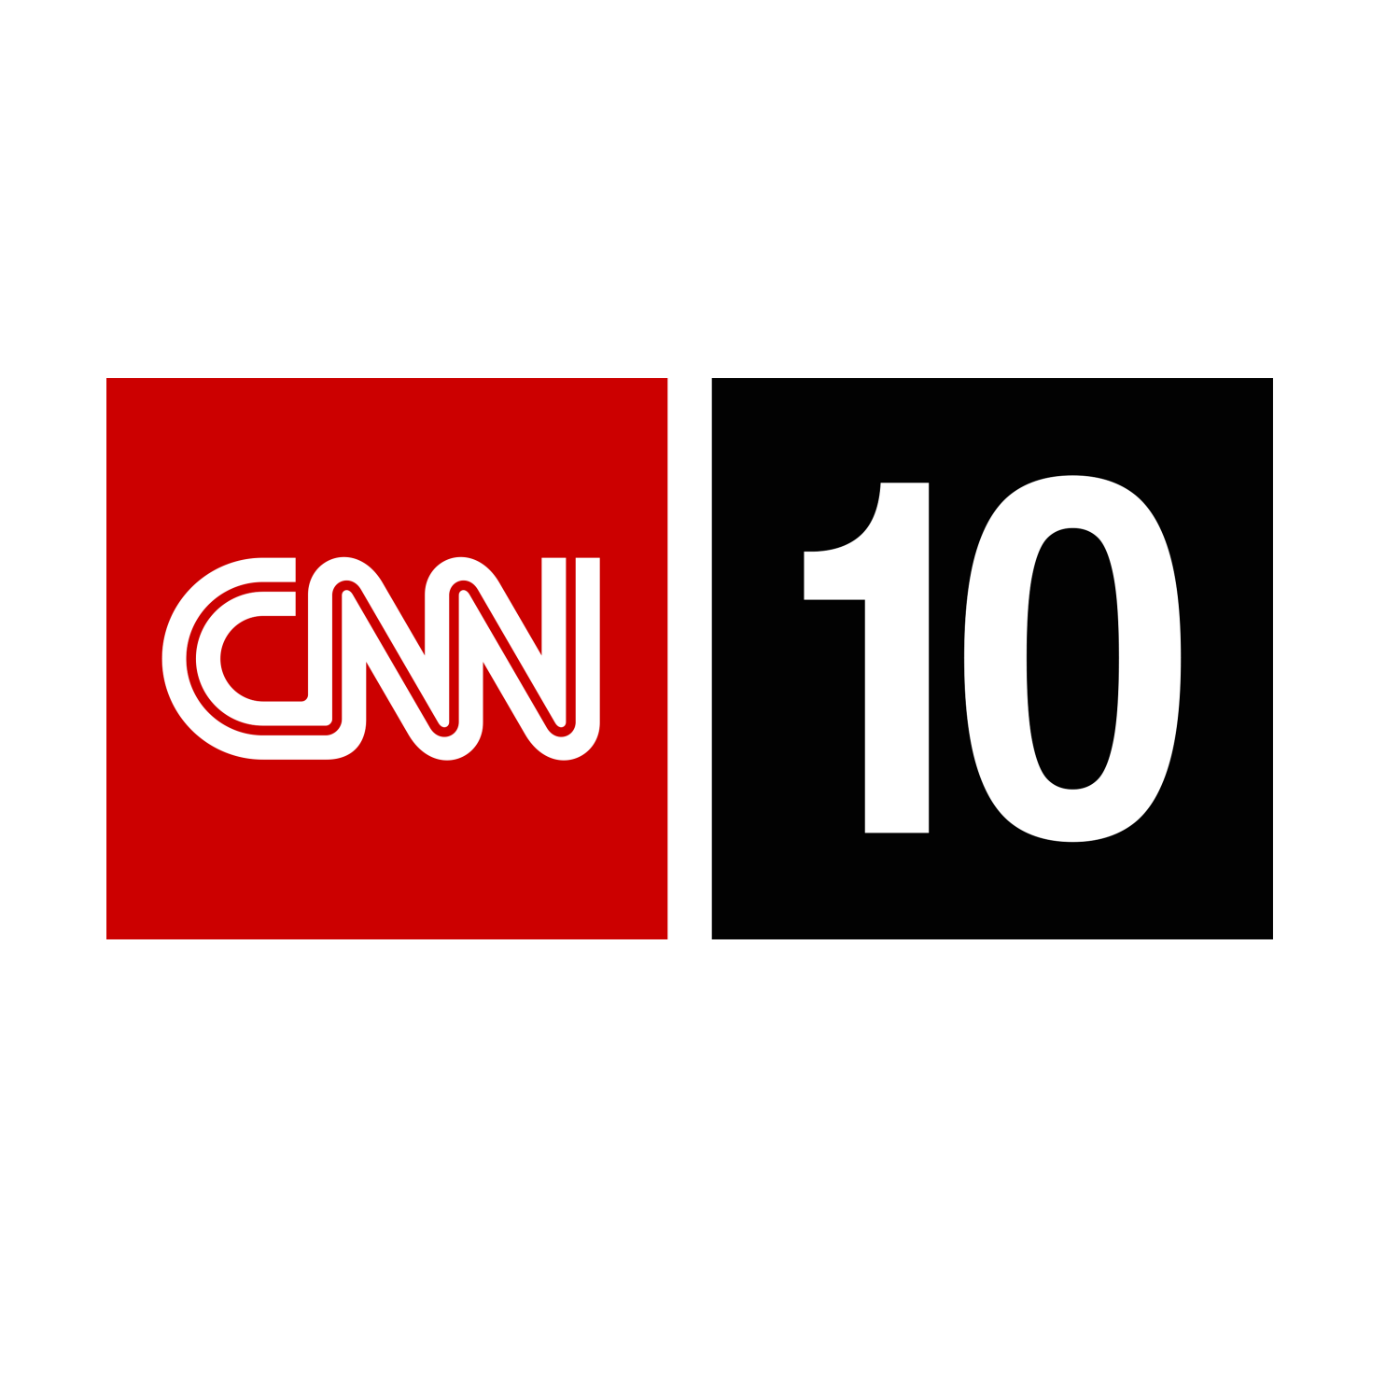 CNN Student News - January 23, 2013